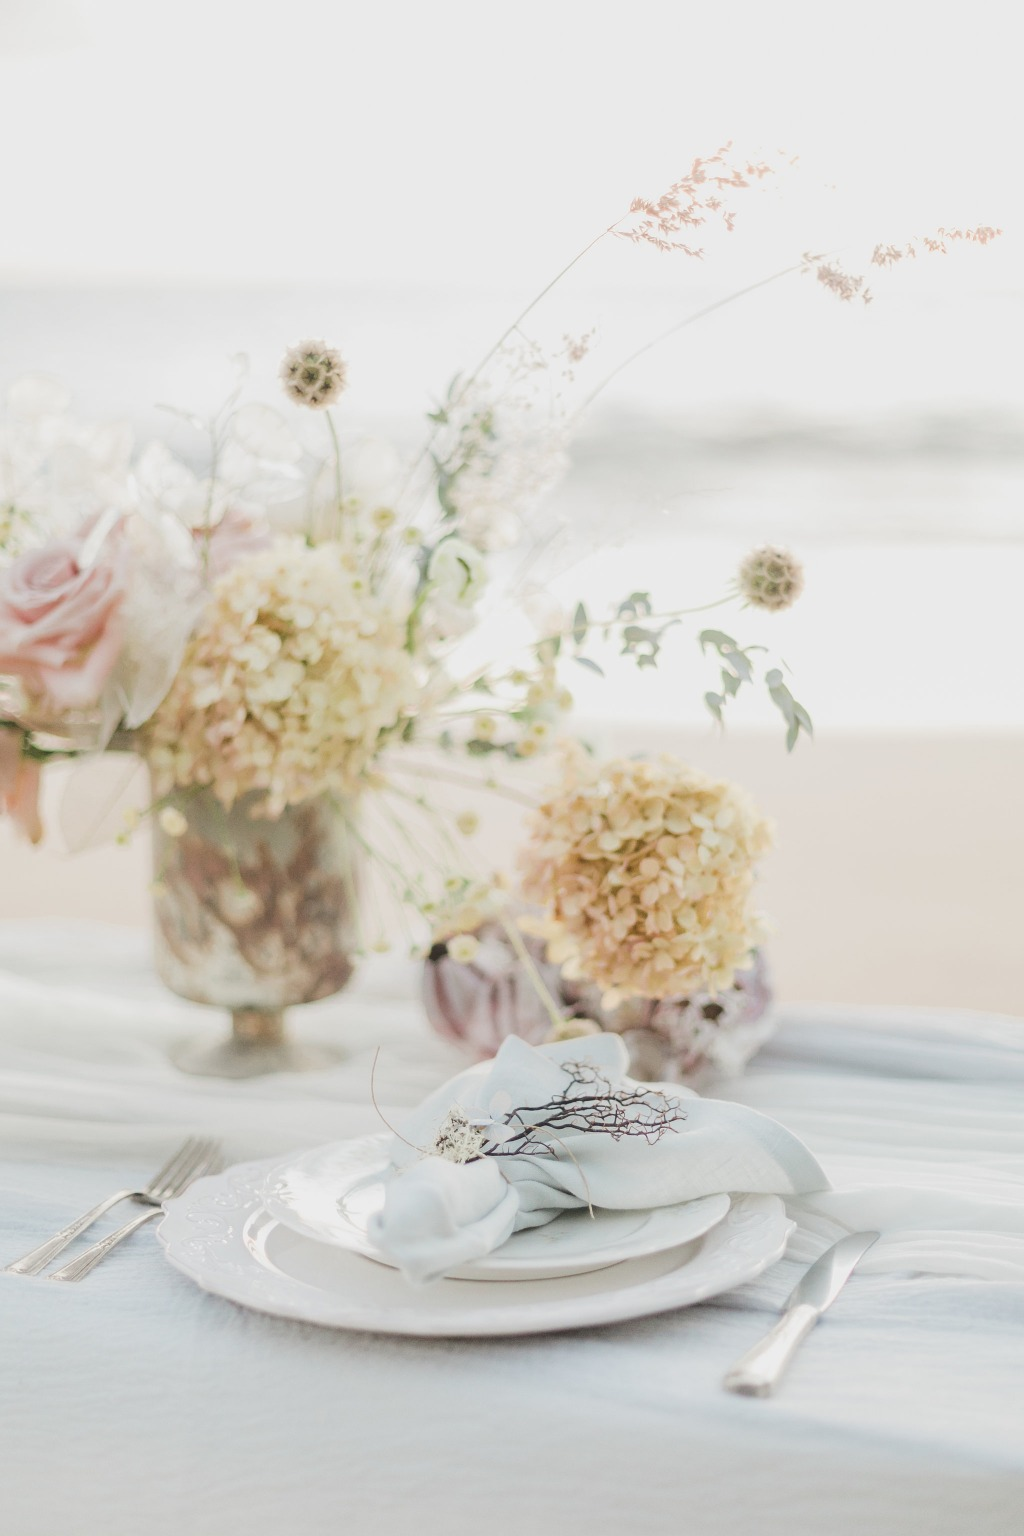 Maui Wedding Photographer | Maui Weddings | Luxury Hawaiian Wedding | Styled Wedding Shoot | Beach Wedding | Botanical Wedding | Garden